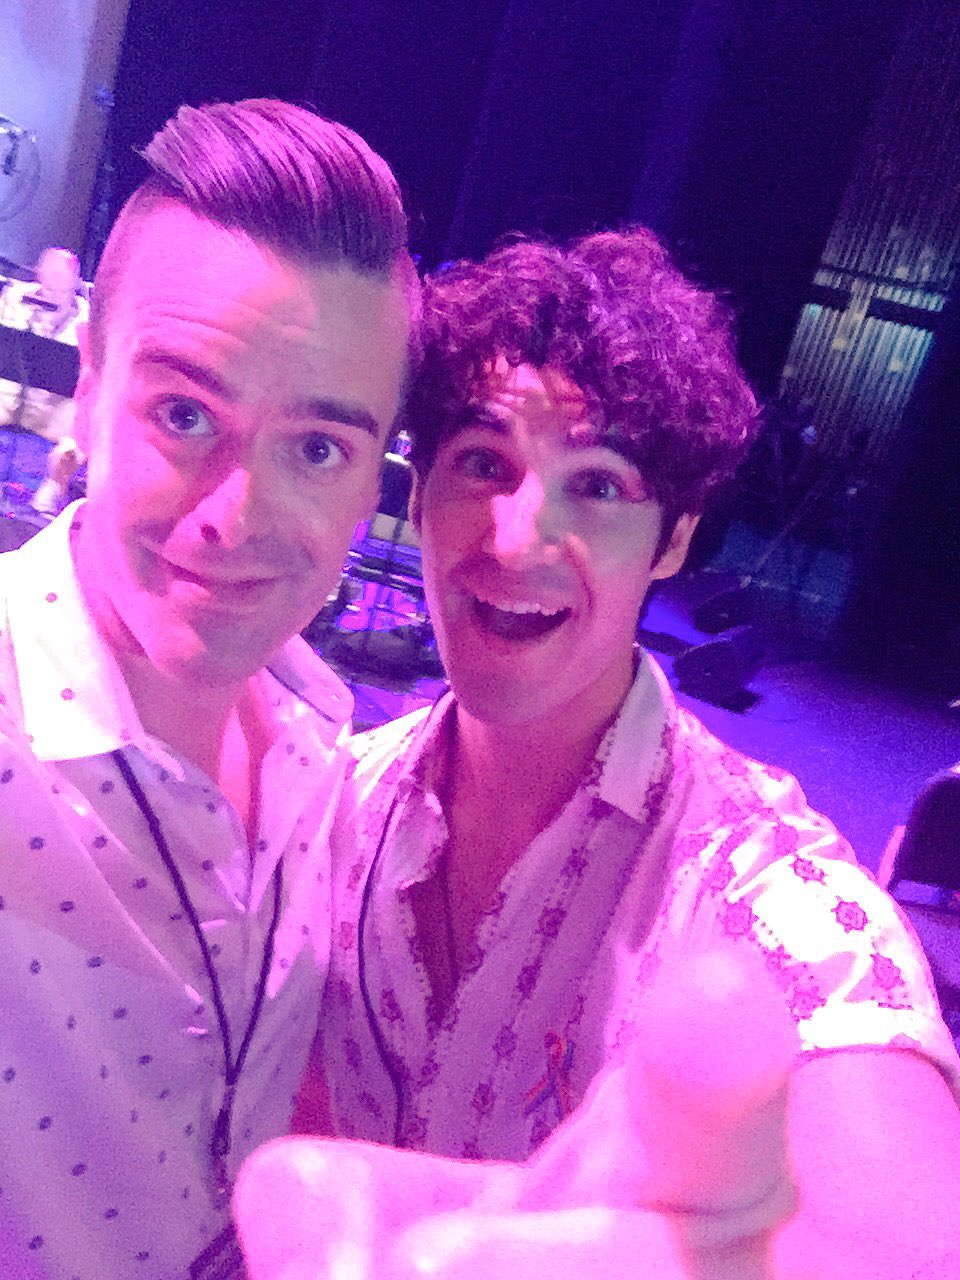 Michael J Moritz Jr and Darren Criss